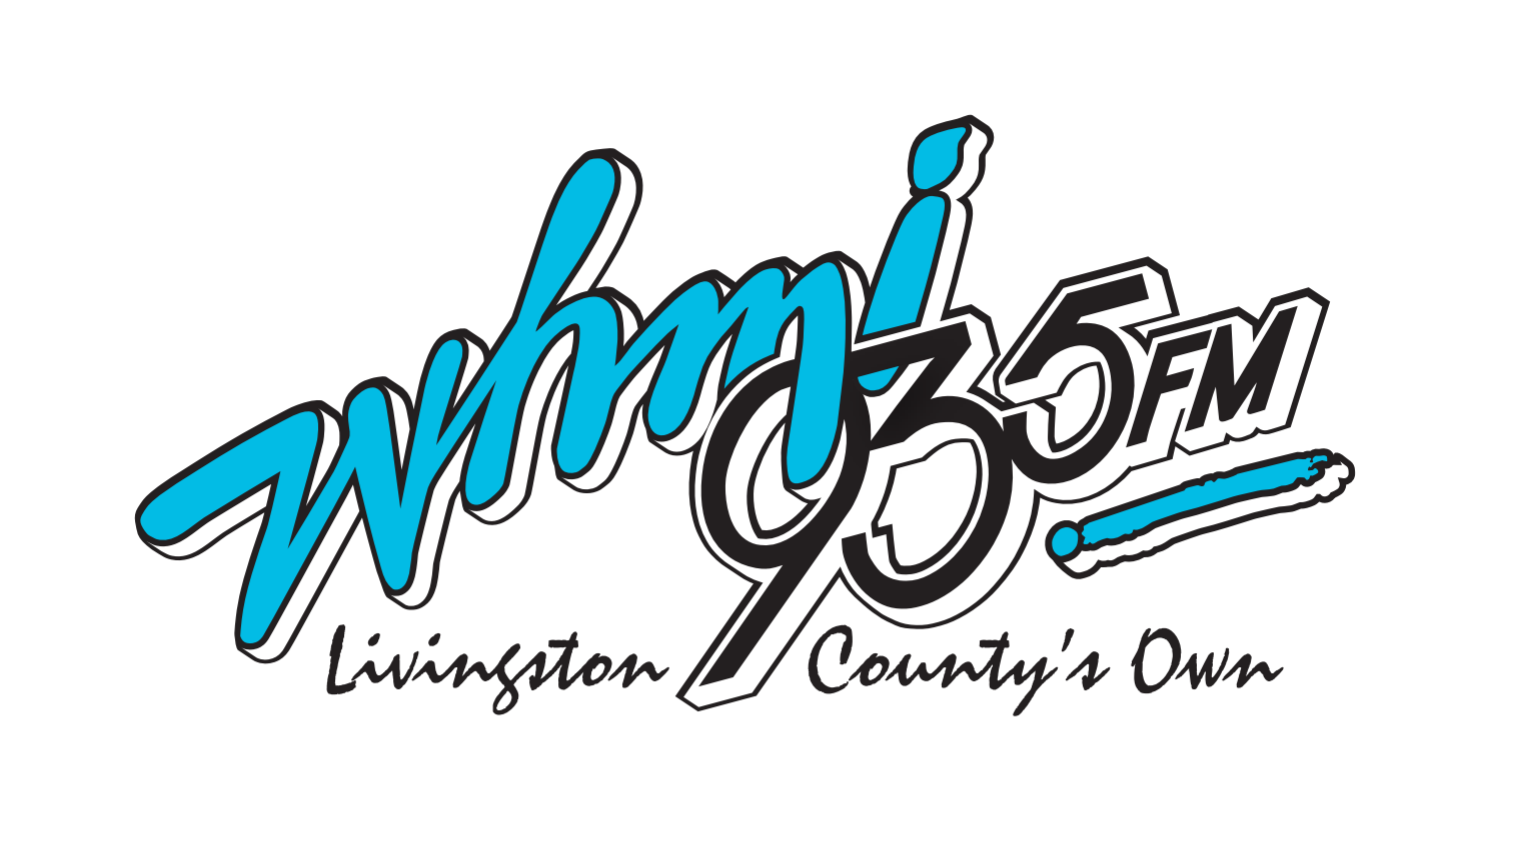 Radio Station WHMI 93 5 FM — Livingston County Michigan News